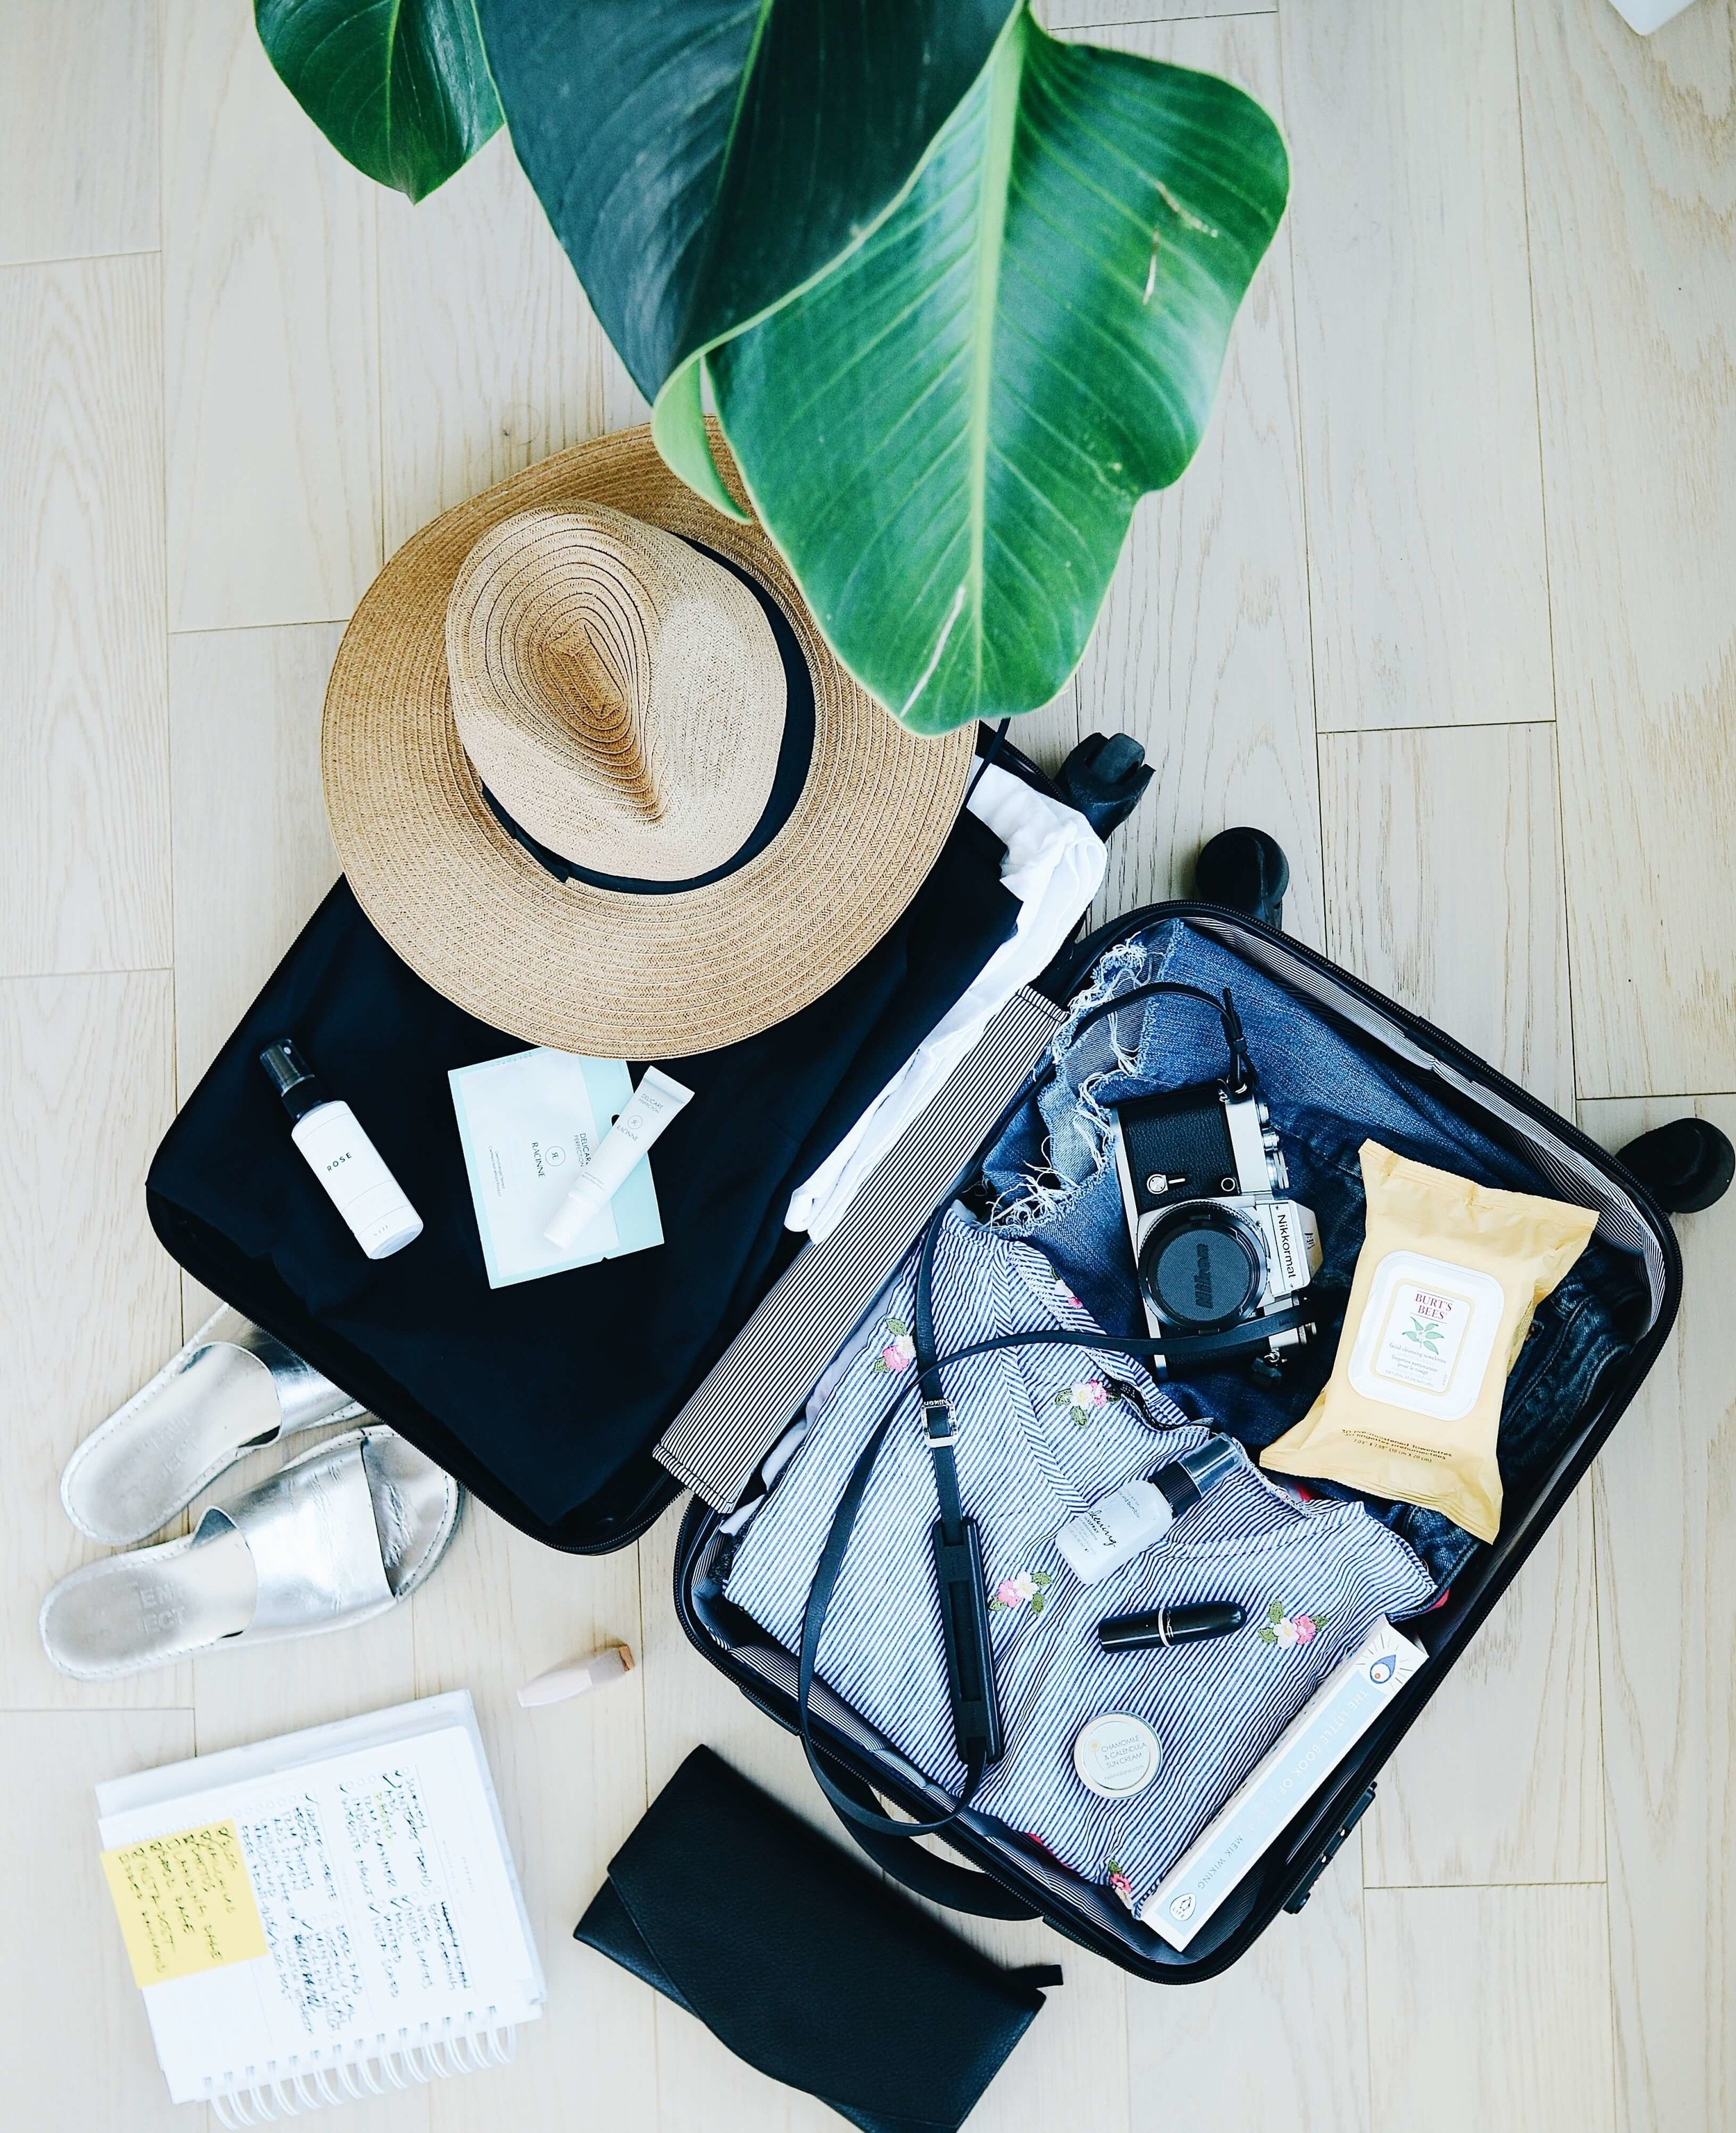 5 of the most profitable Instagram niches - travel.jpg